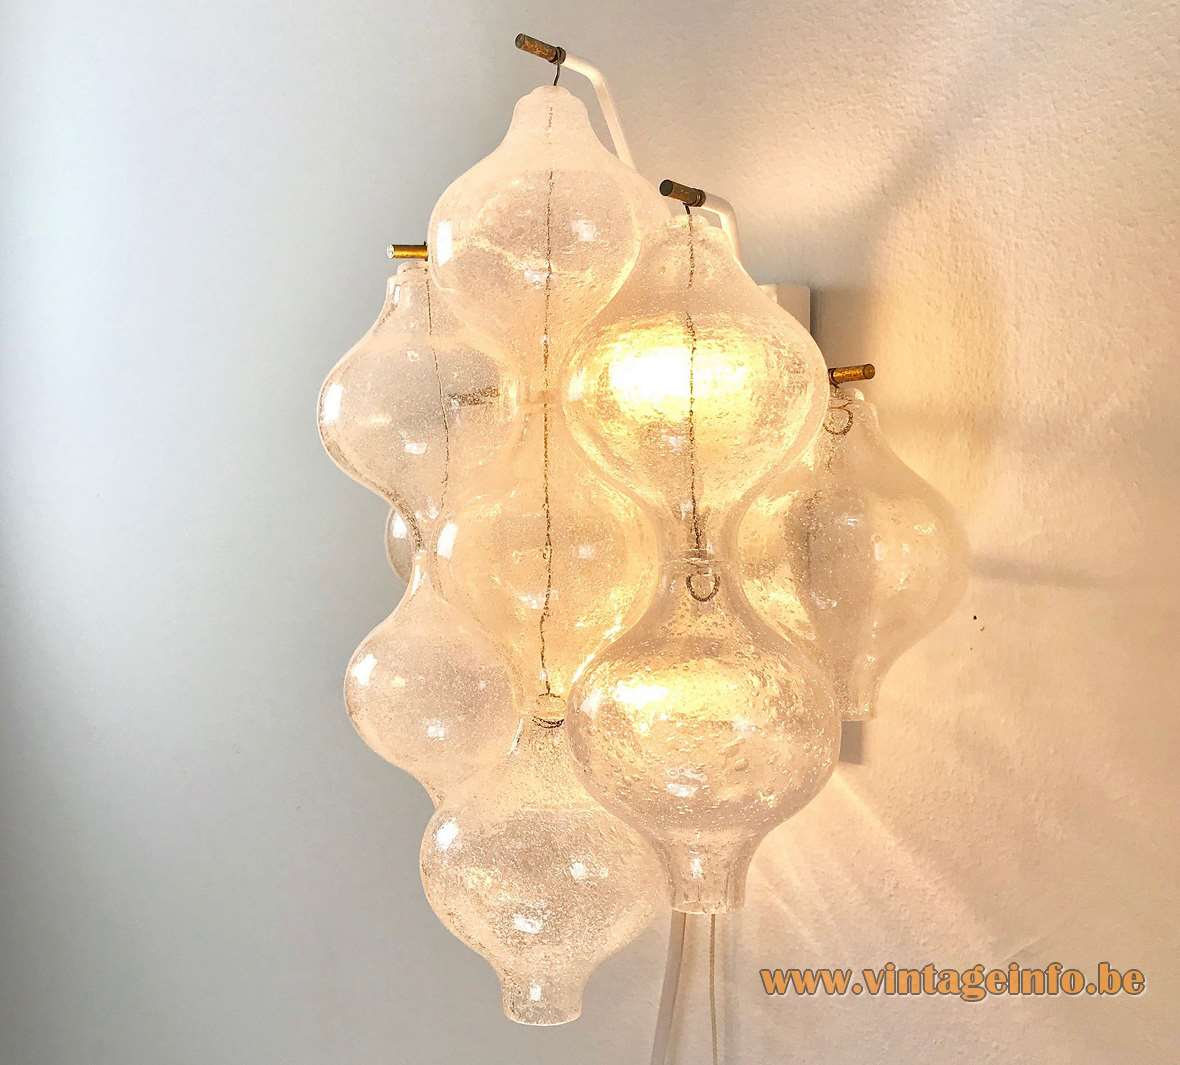 Kalmar Tulipan 9 WA Wall Lamp tulip onion bubble glass balls metal frame 1960s 1970s MCM